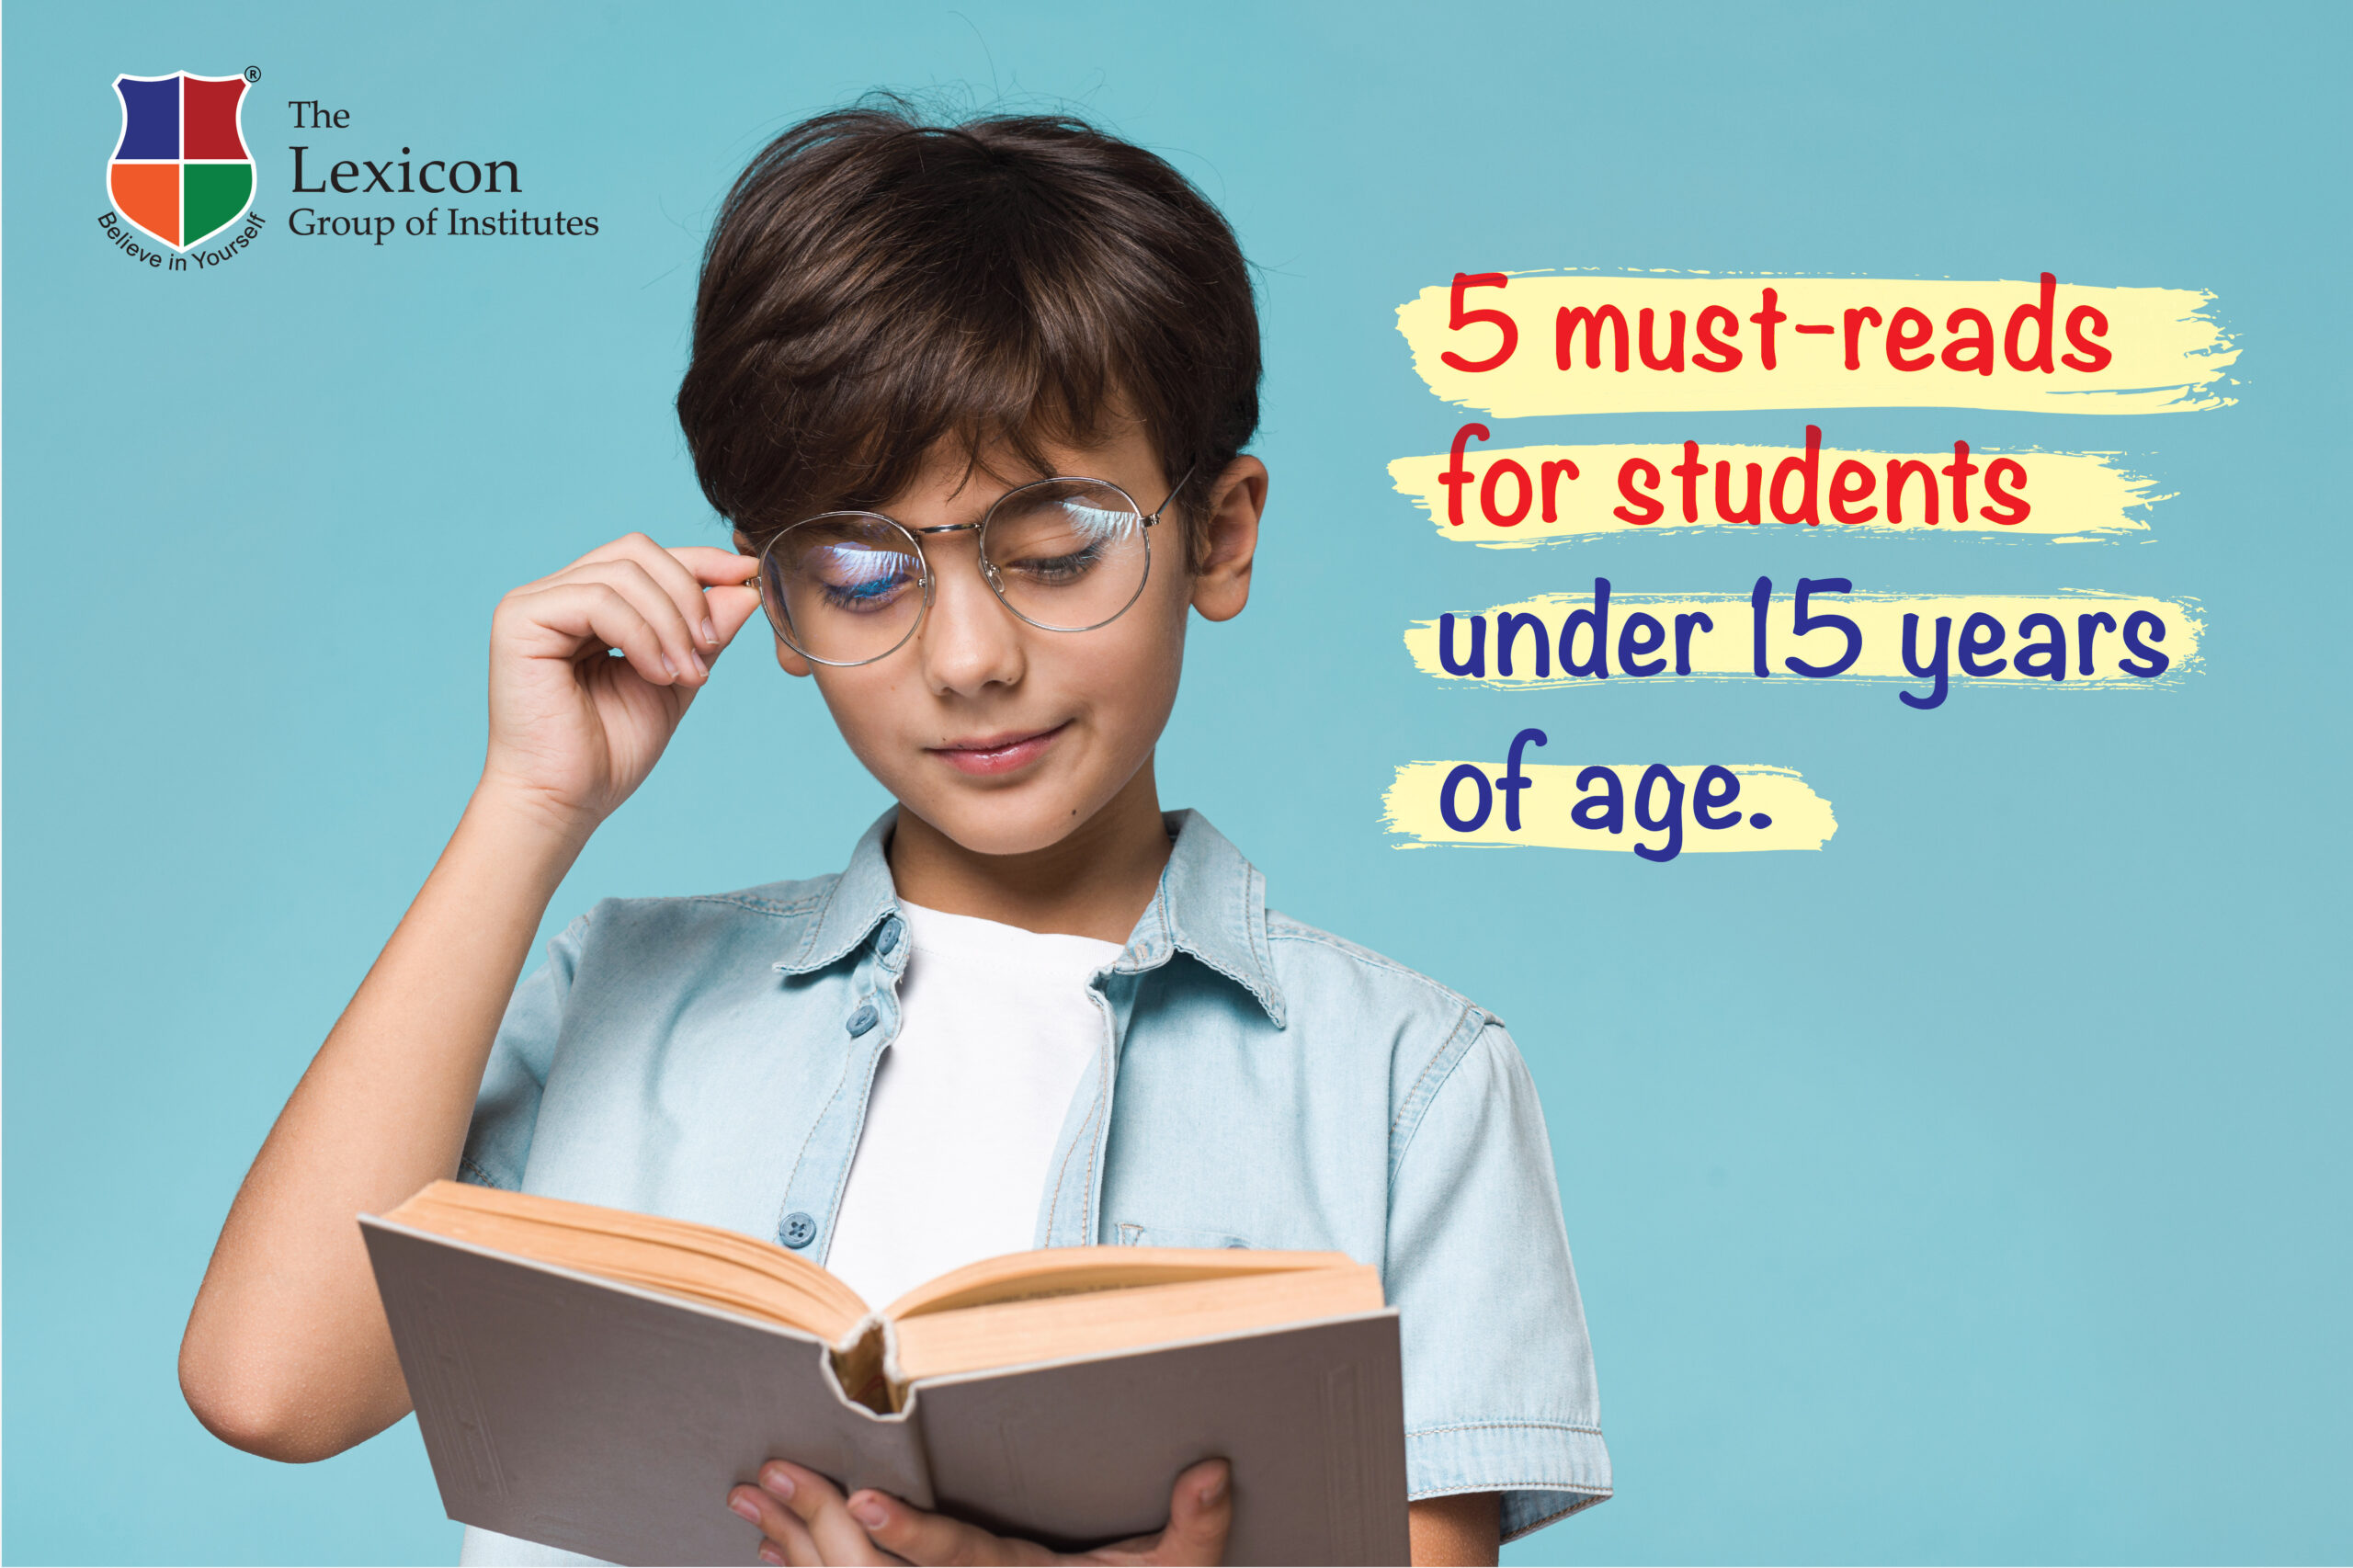 Five must-reads for students under 15 years of age